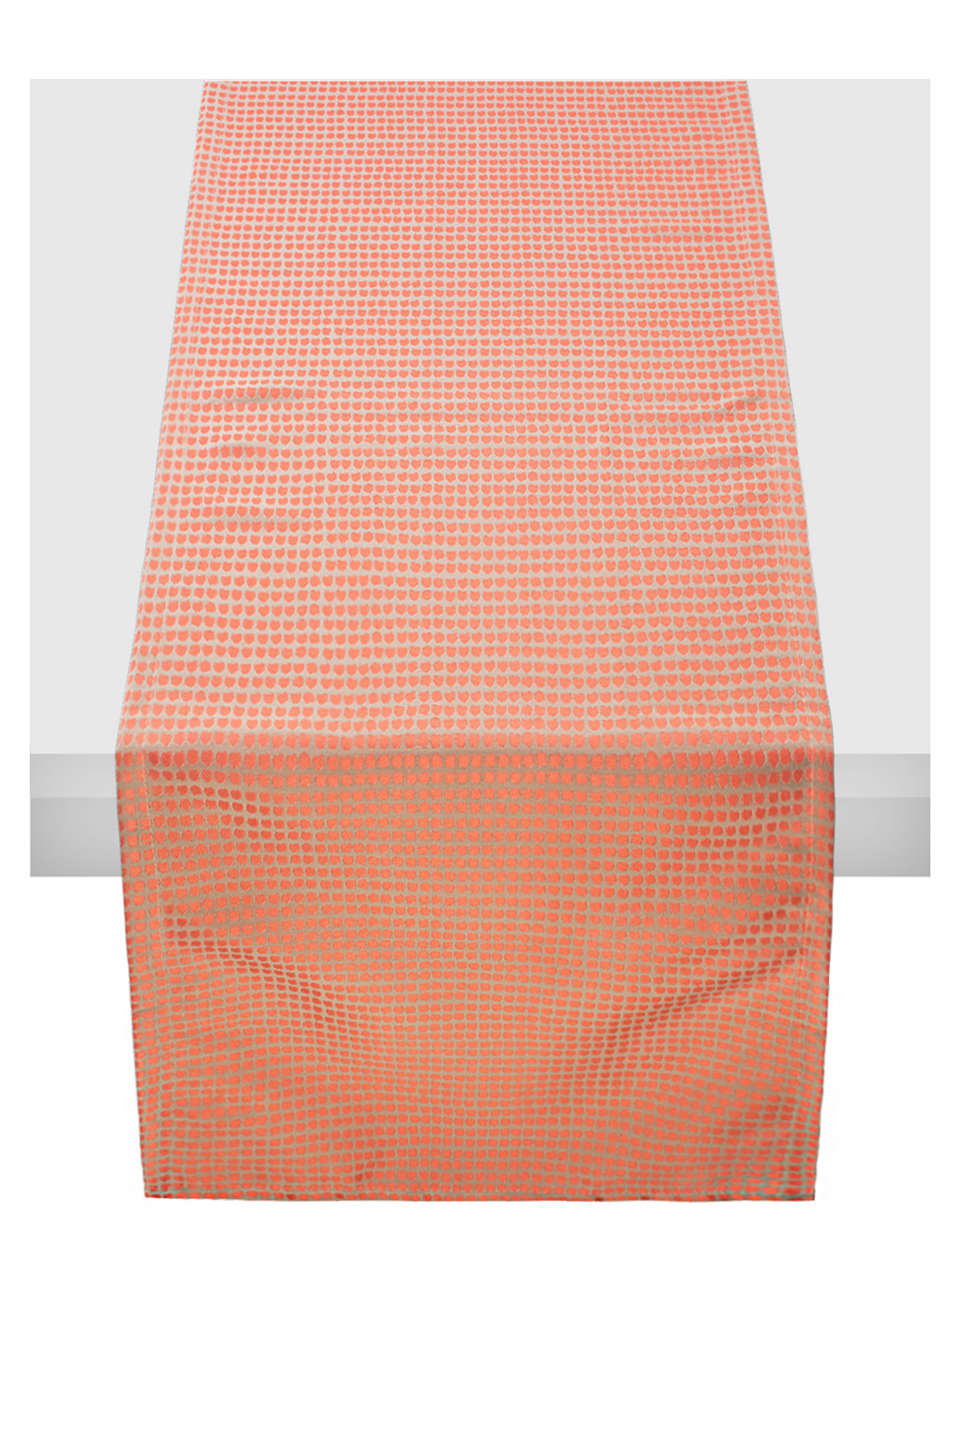 Esprit - Table runner with an in-woven dot pattern